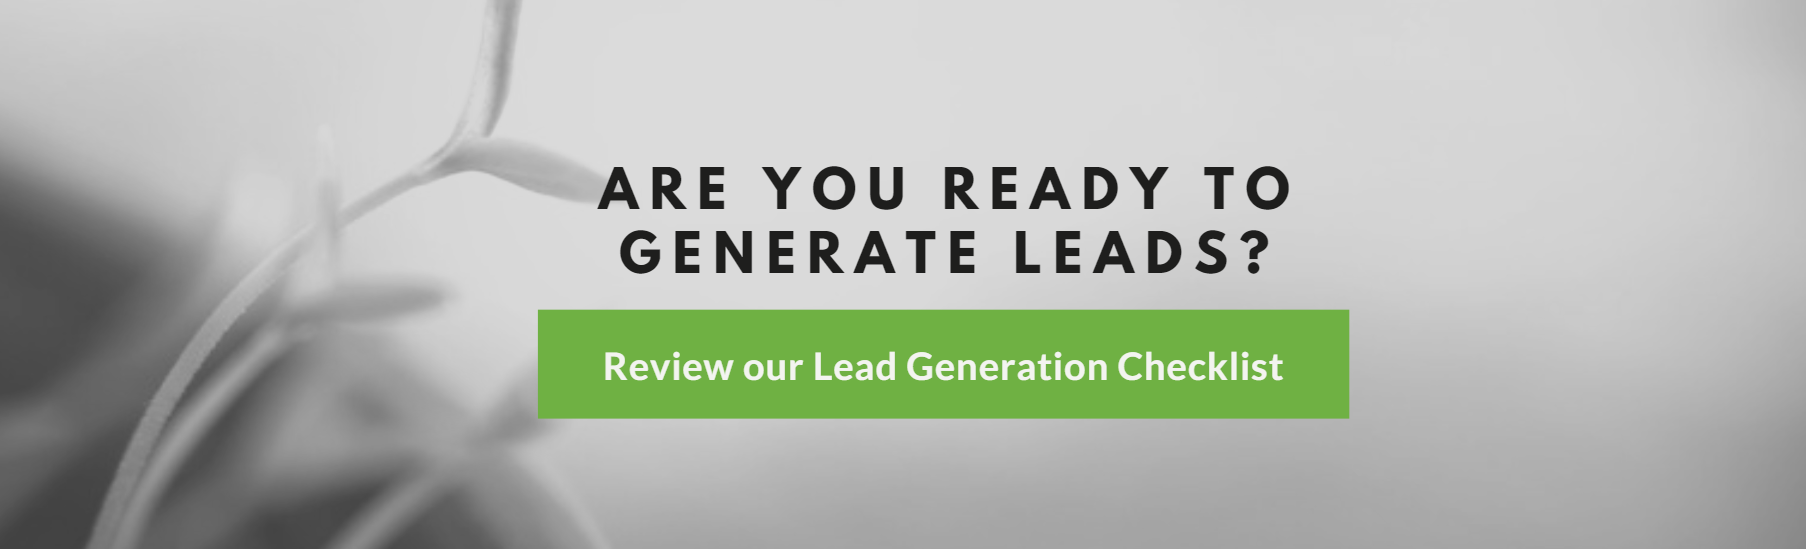 leads1